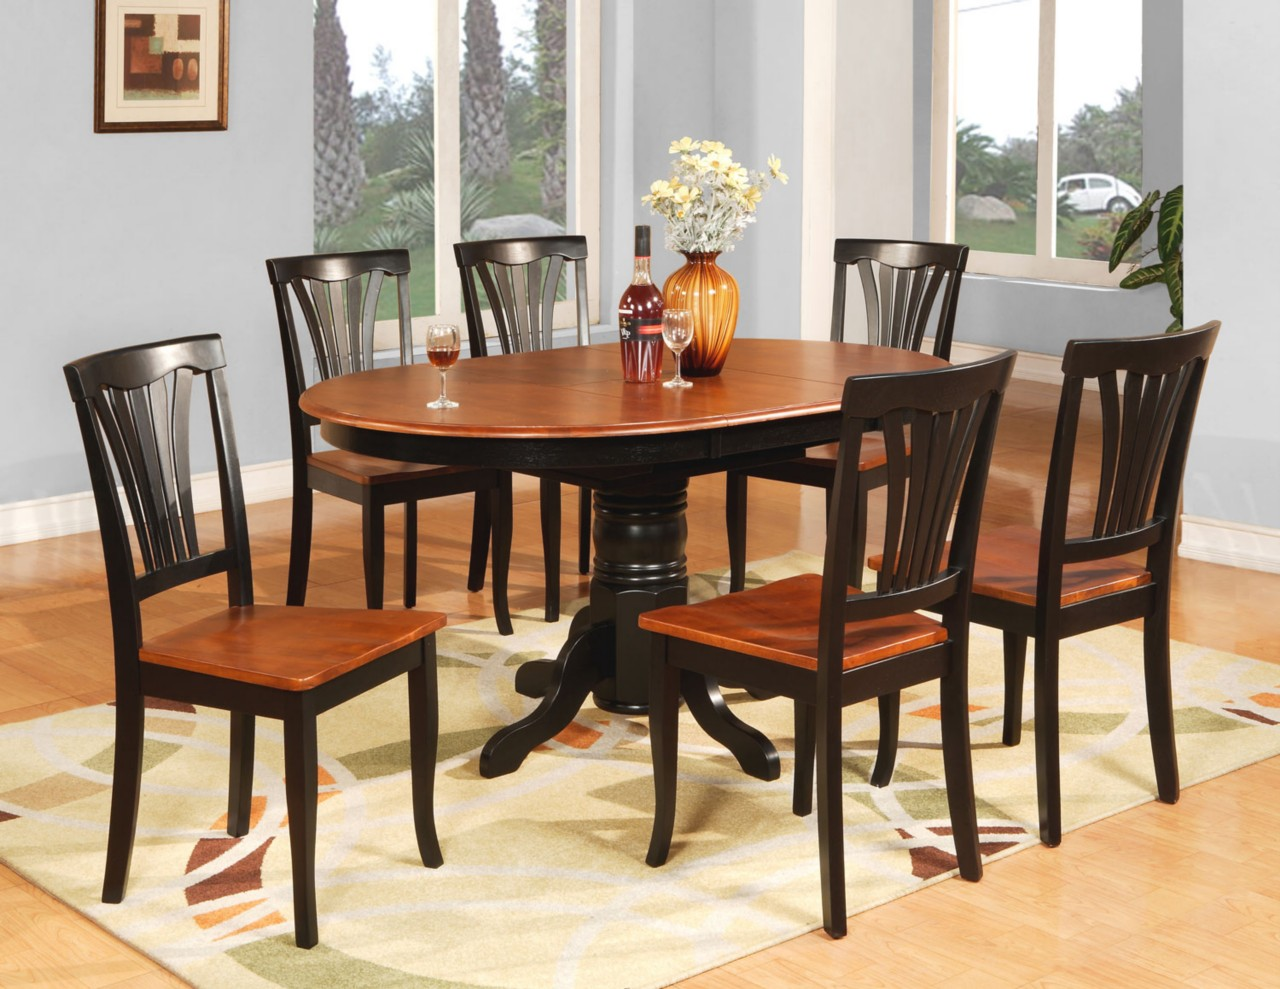 7 pc oval dinette kitchen dining room table 6 chairs ebay for Dinette furniture